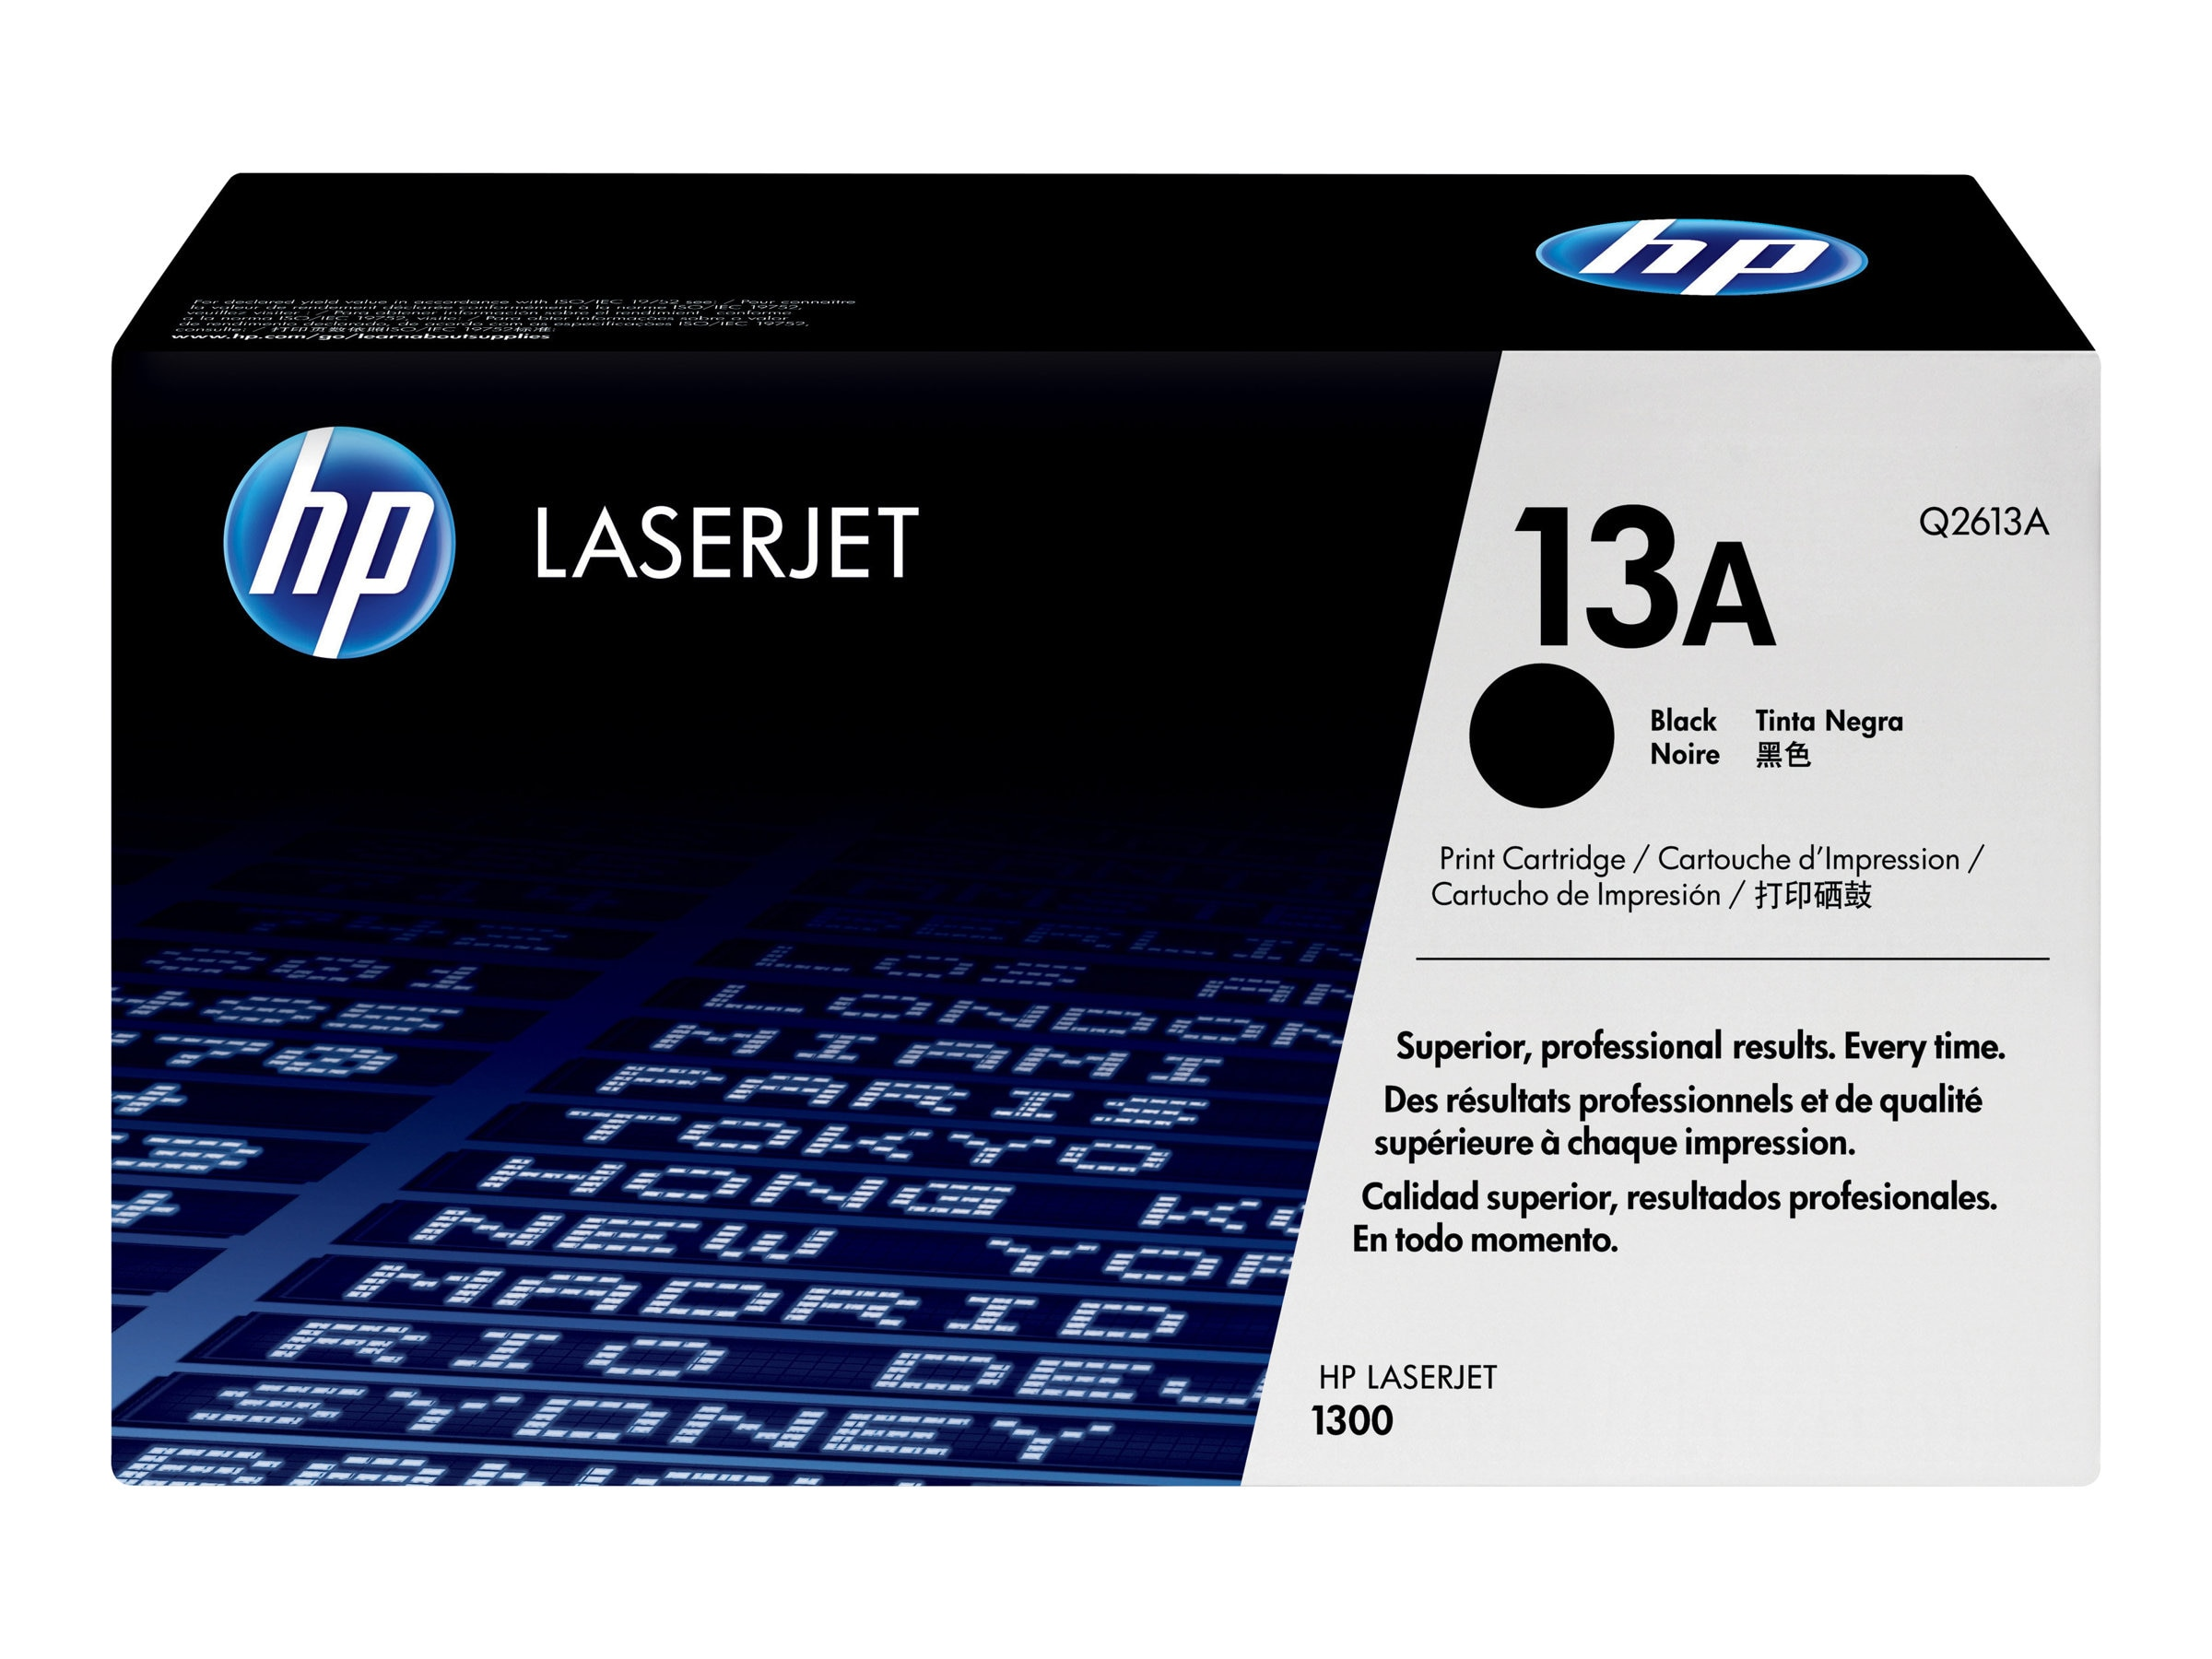 HP 13A (Q2613A) Black Original LaserJet Toner Cartridge for  HP LaserJet 1300 Printers